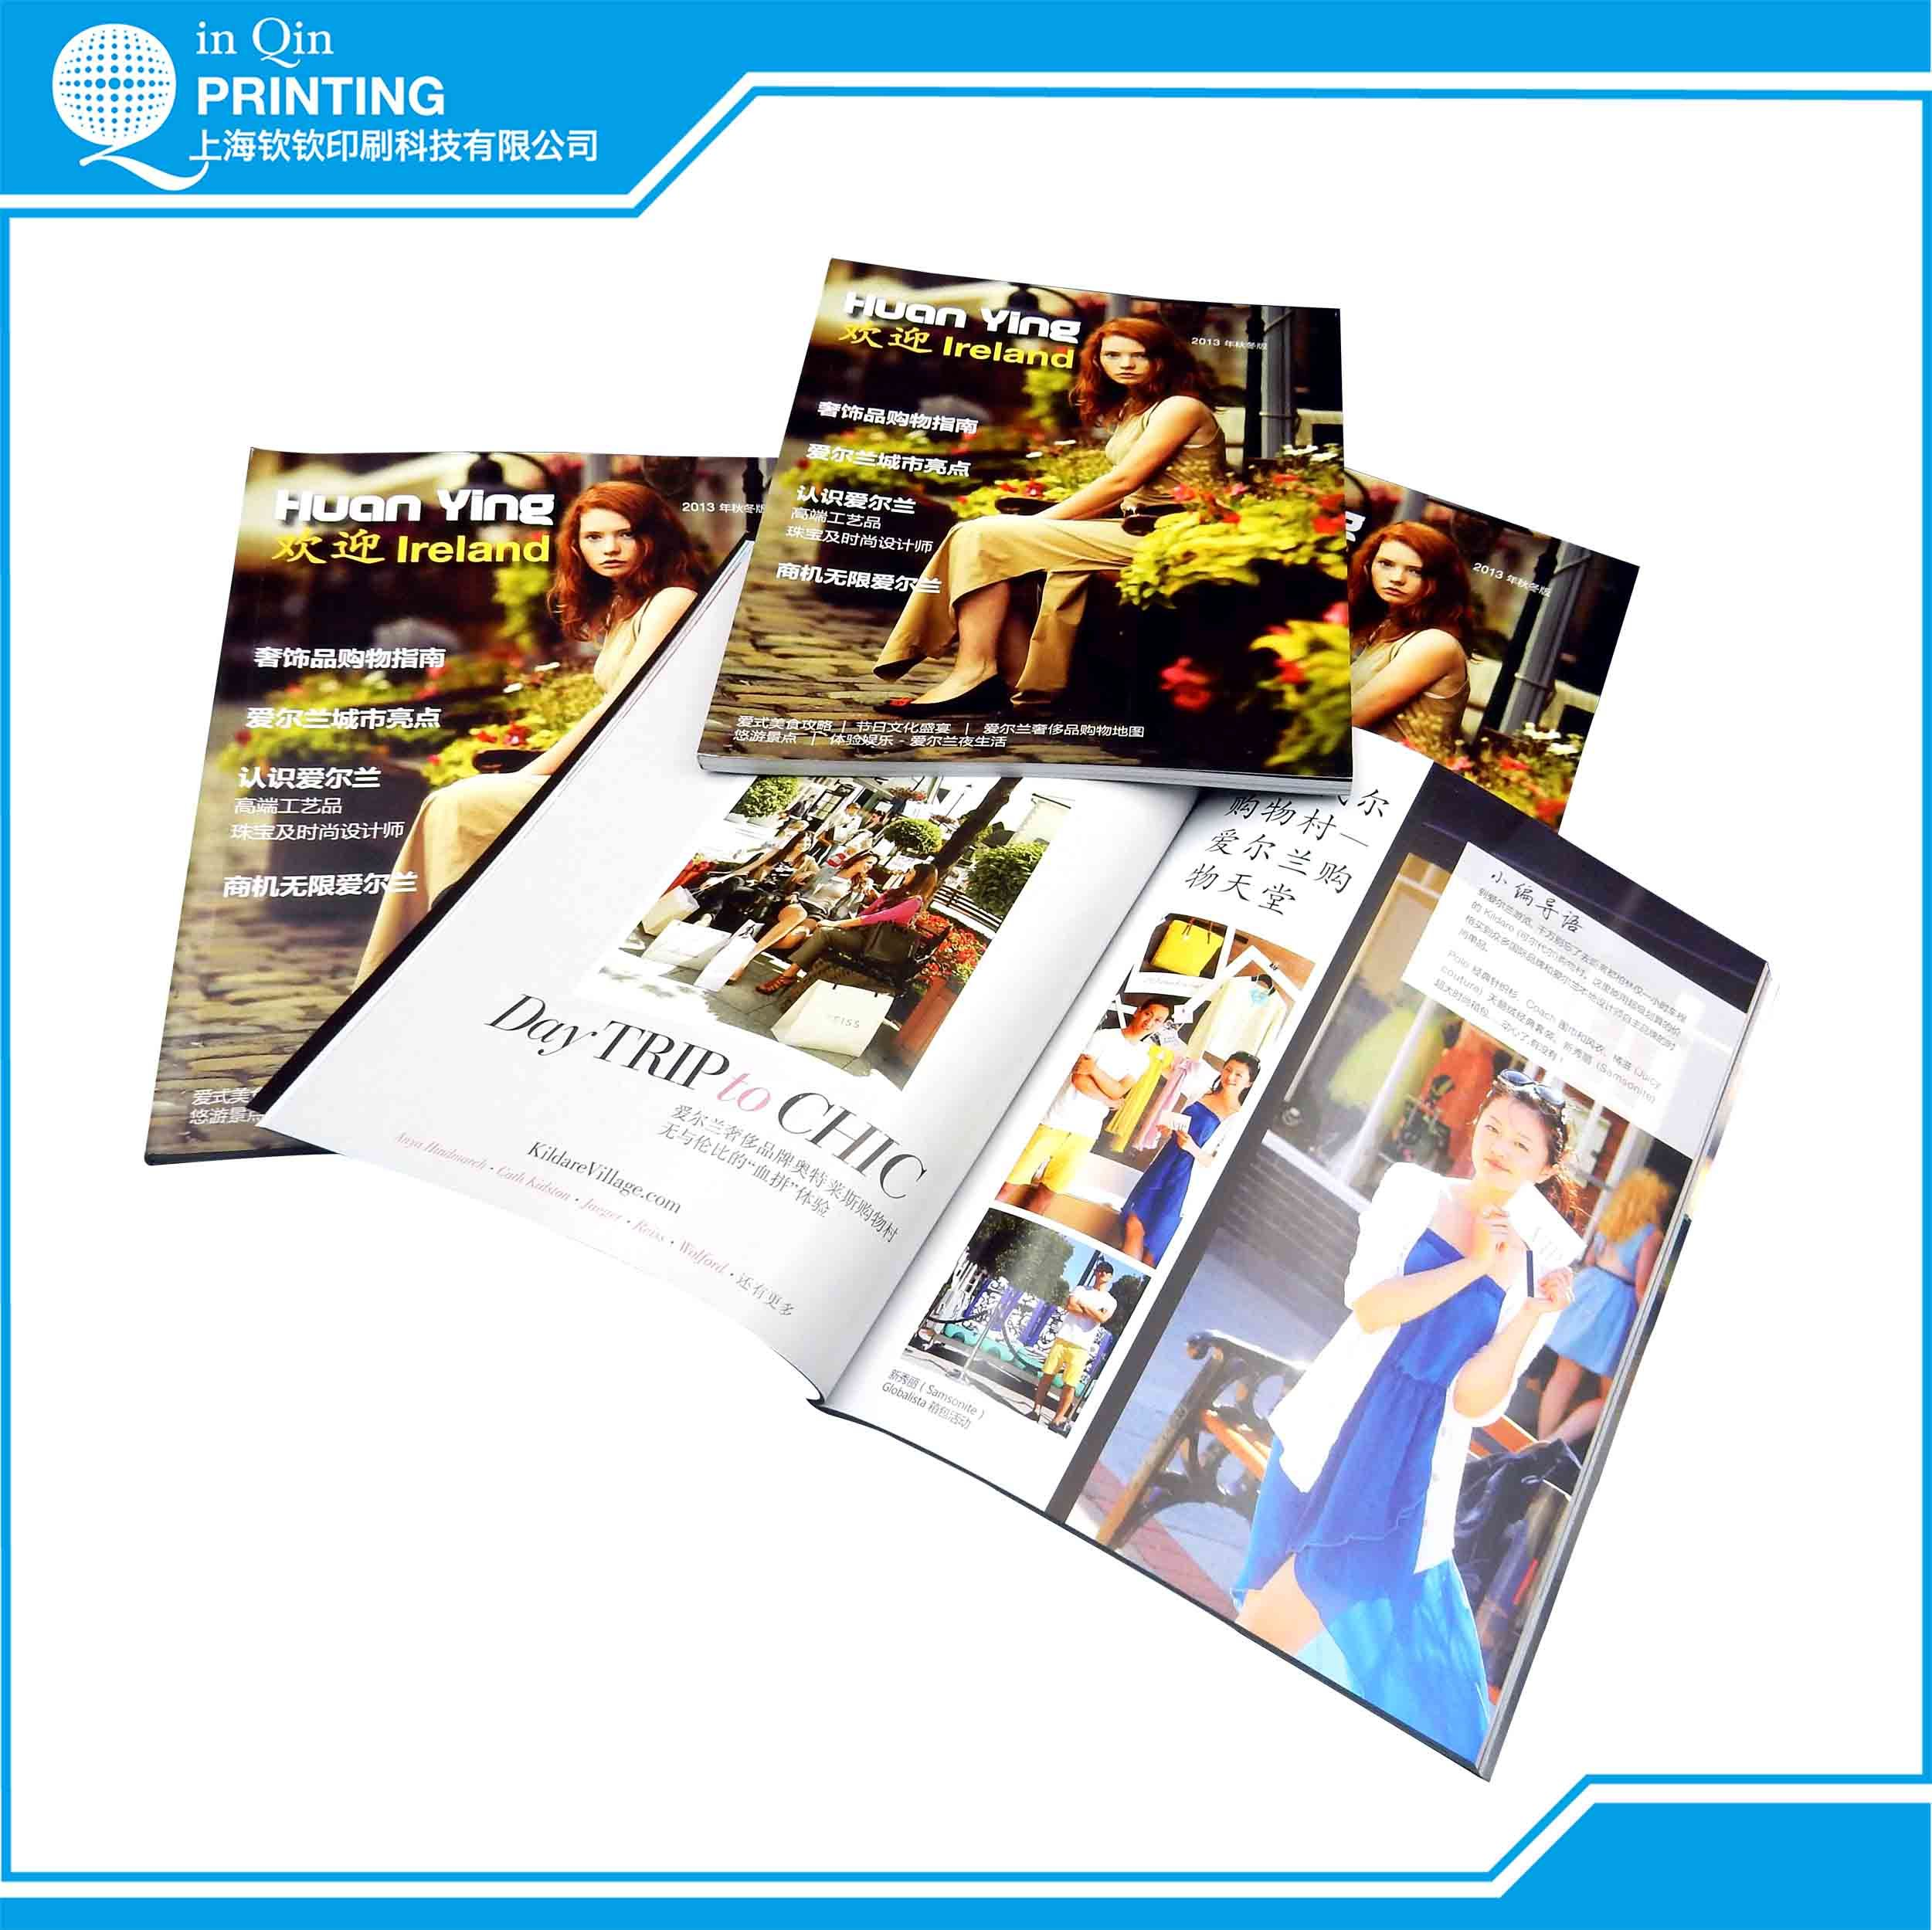 Print Customized Design Magazine in Shanghai China